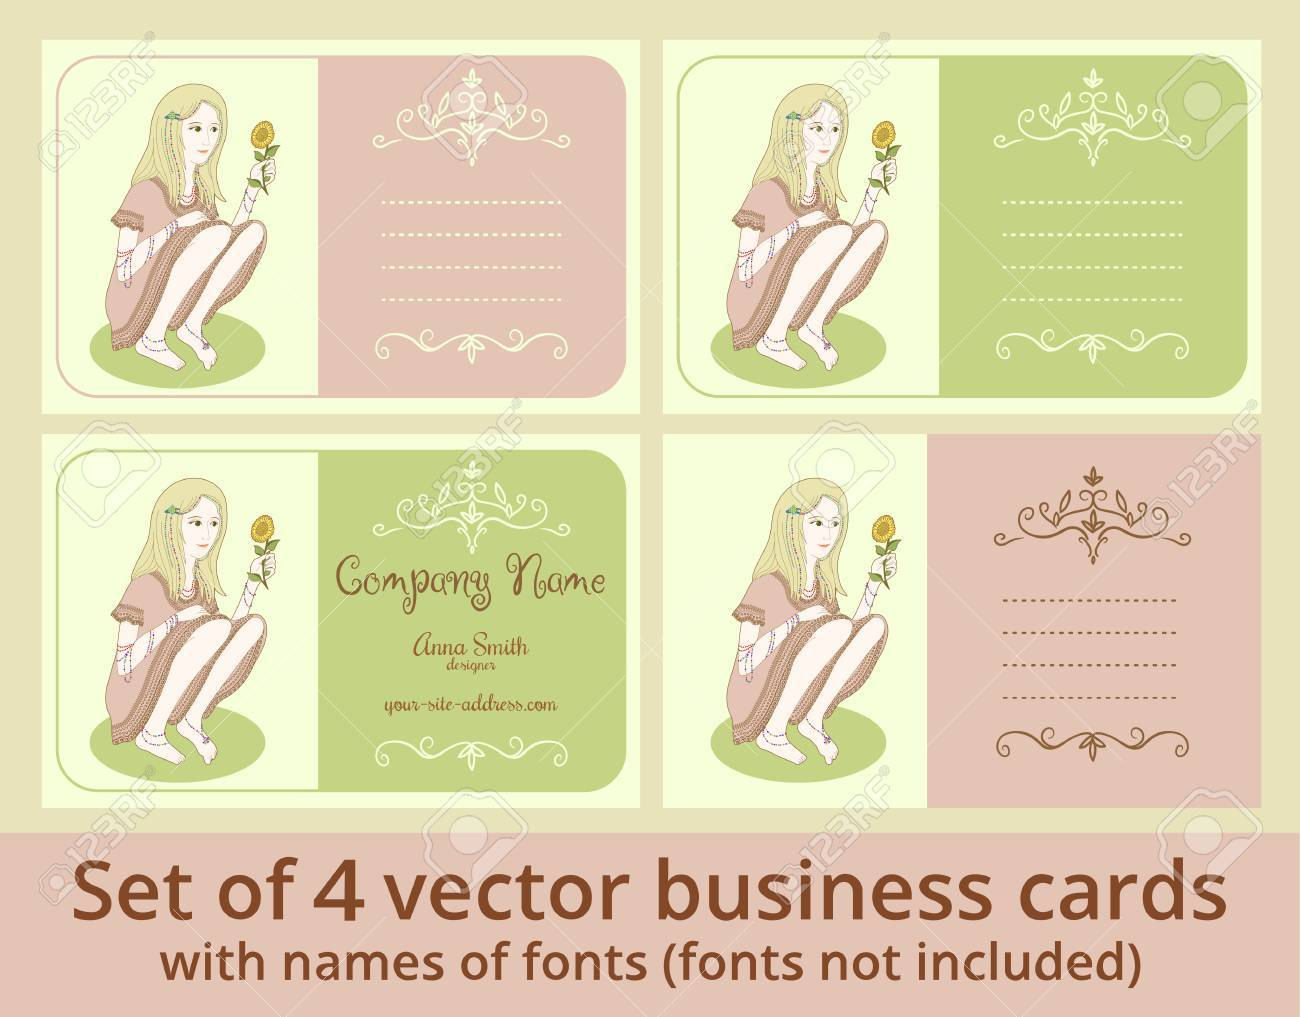 stock photo vector business cards template set girl with sunflower cards for beauty salon design studio barber or make up artist